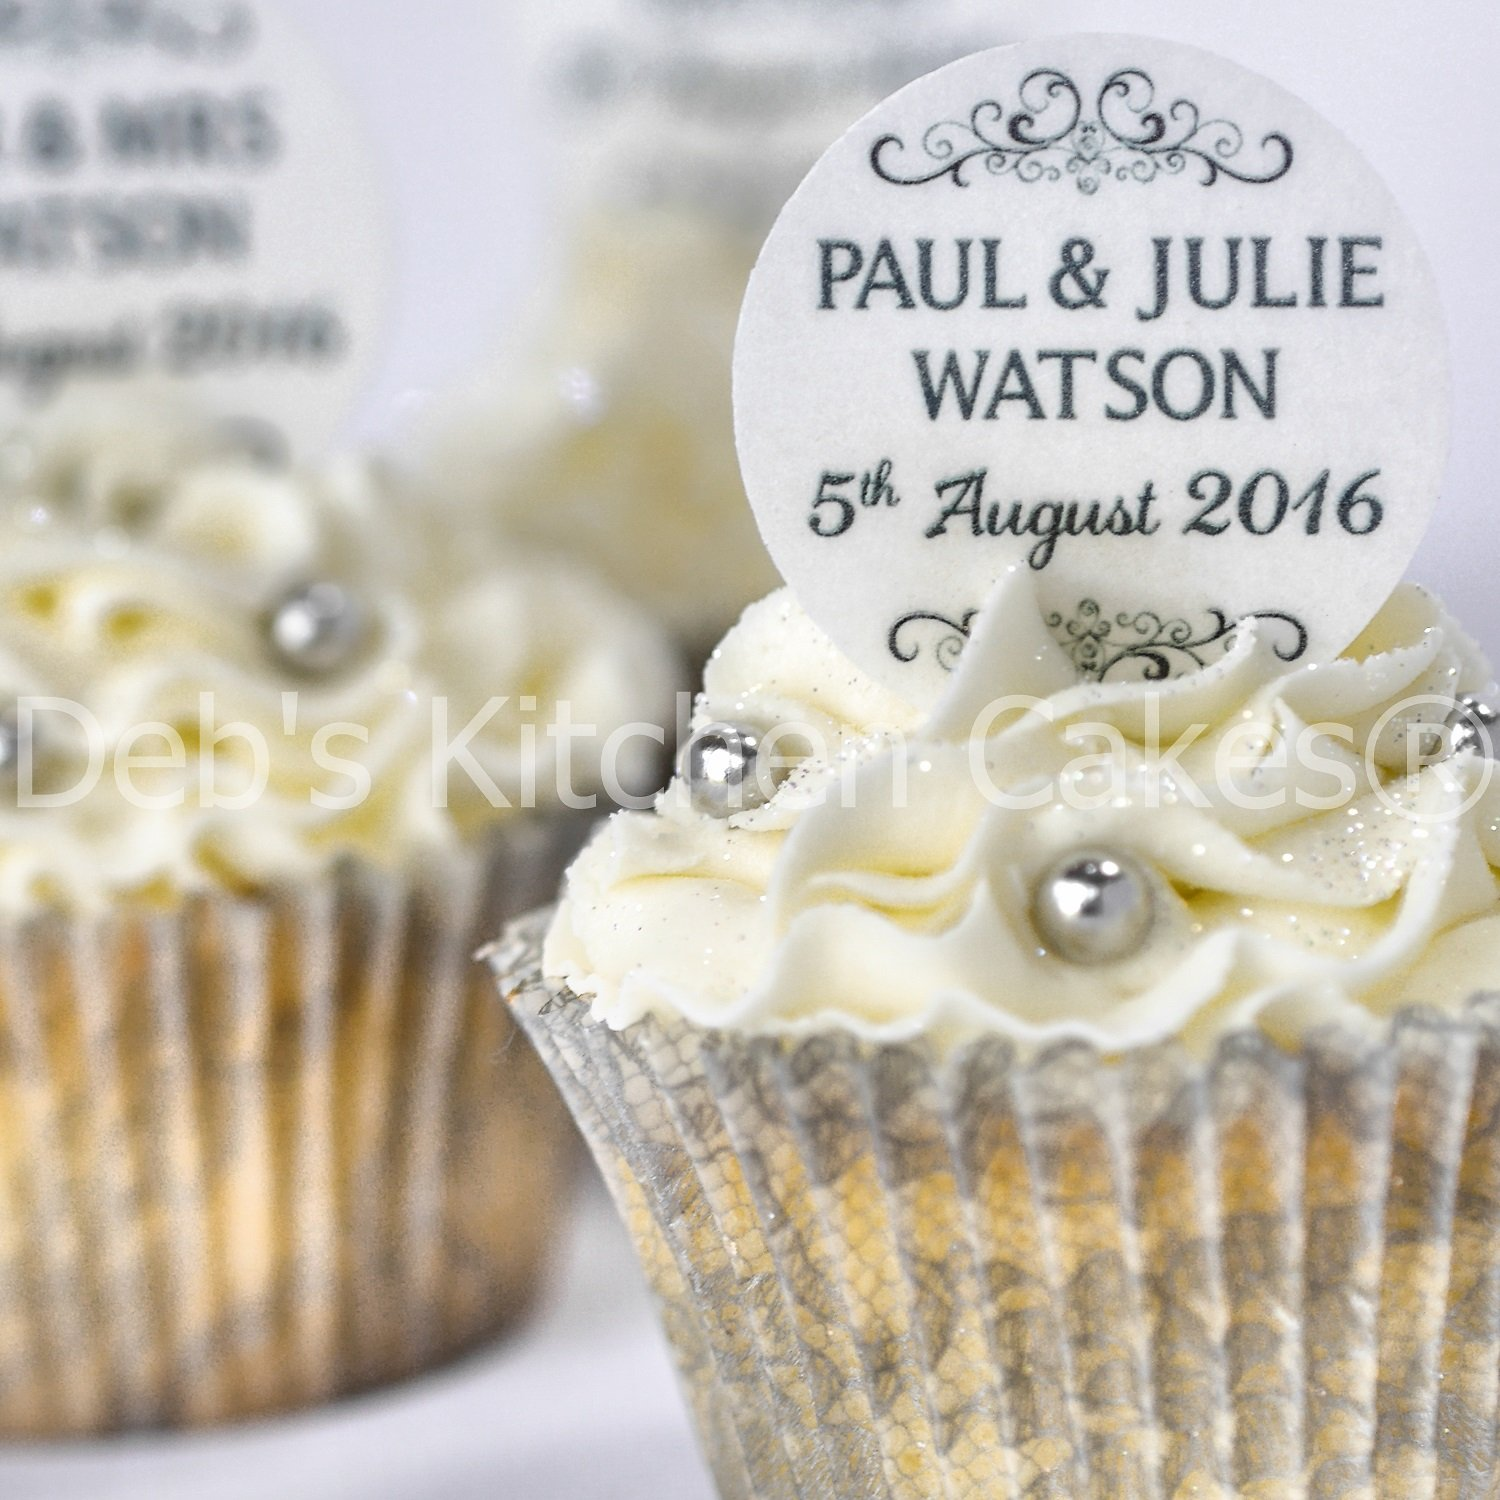 Wedding Cupcake Toppers: Amazon.co.uk